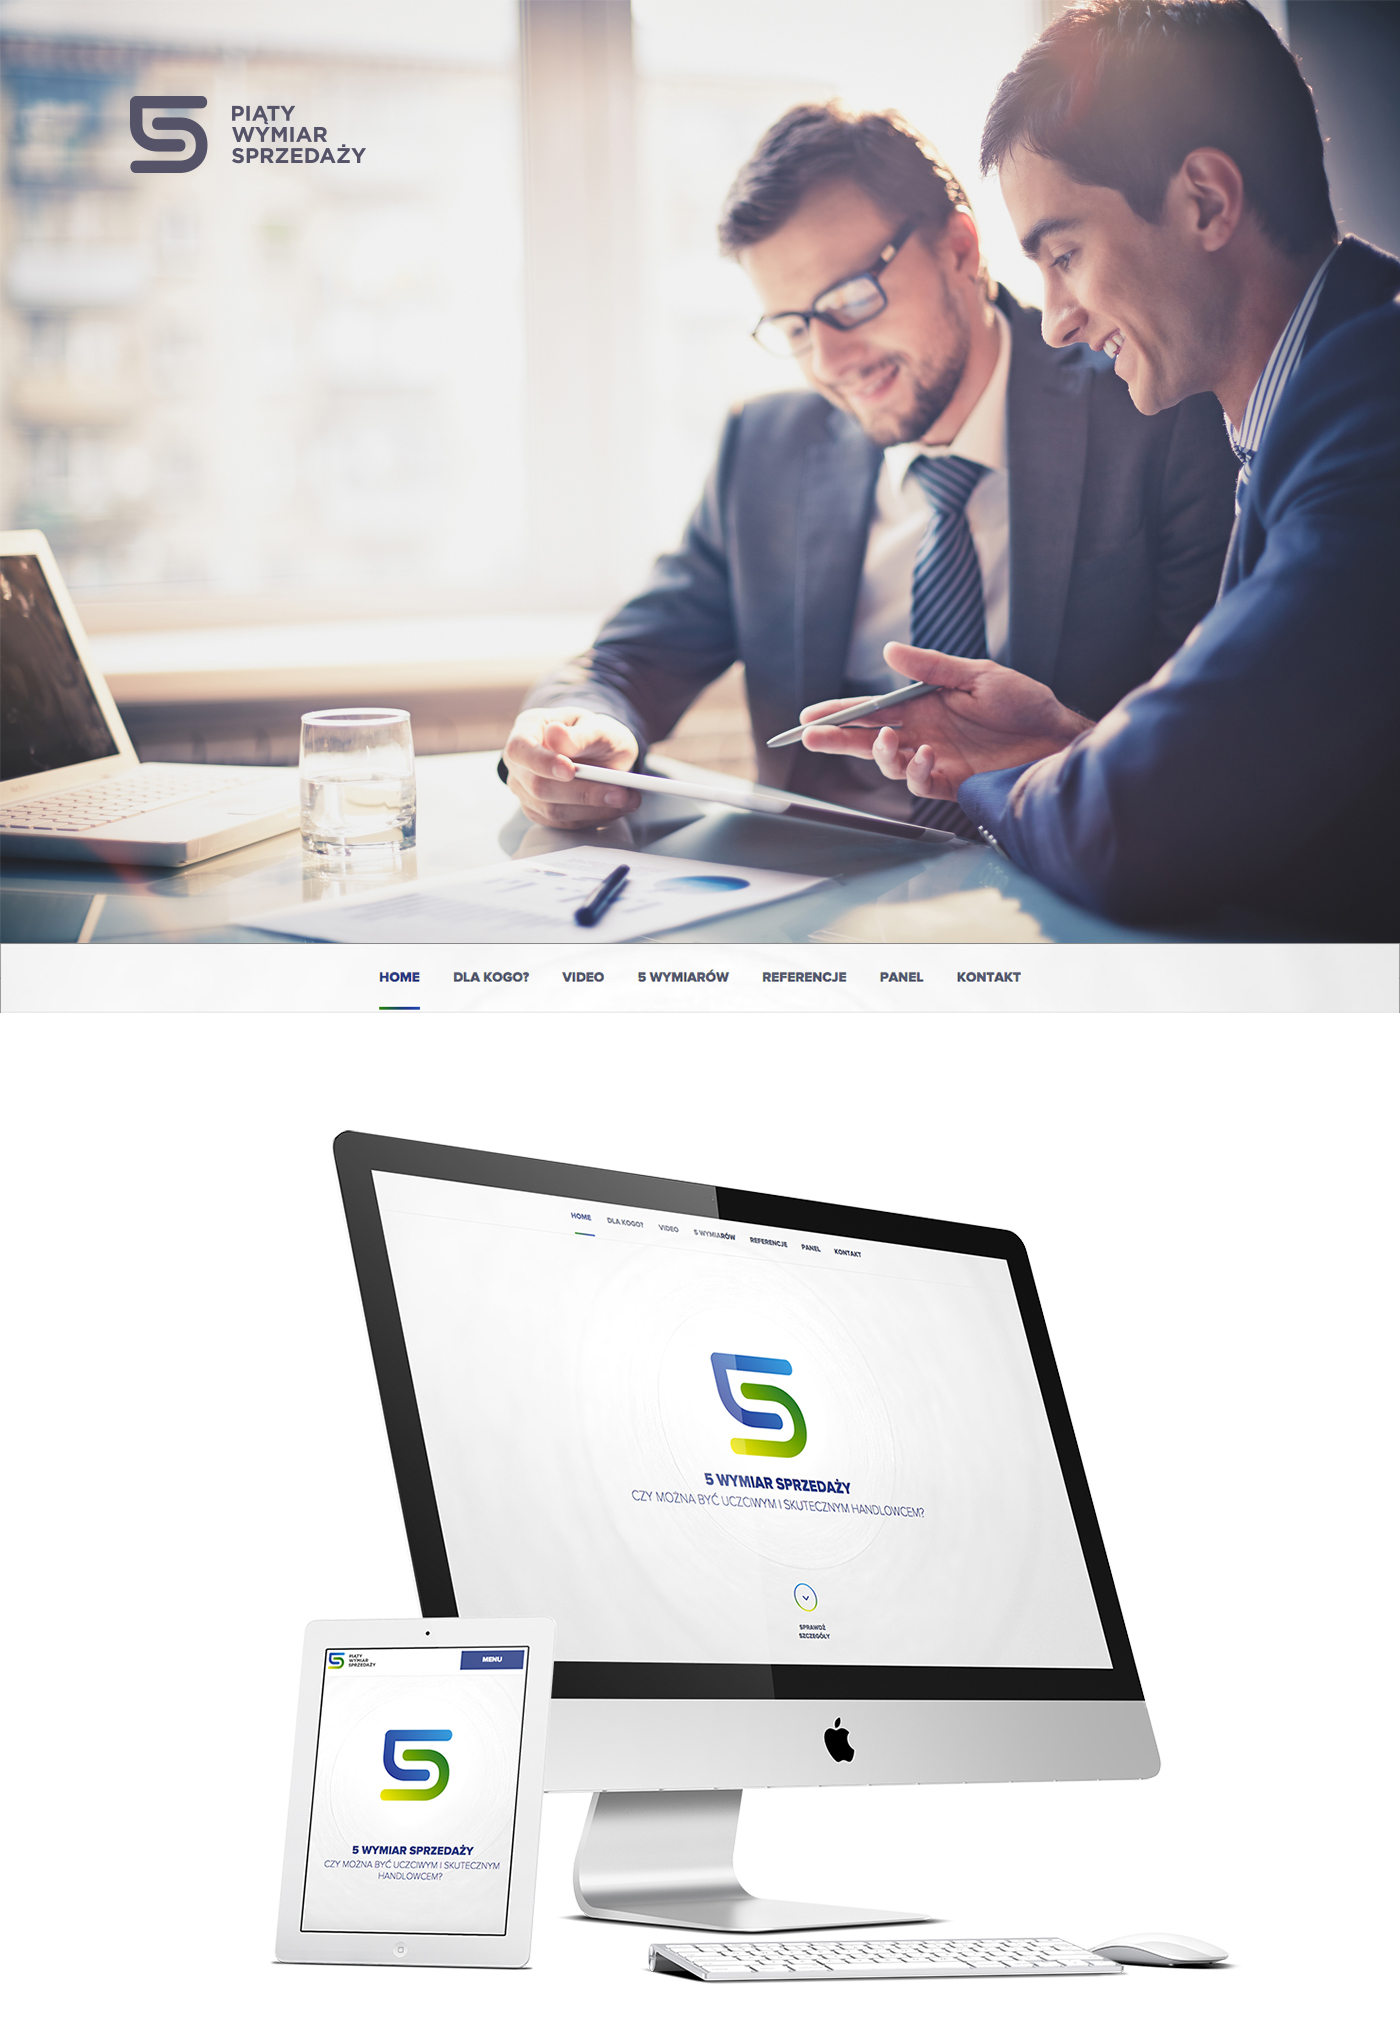 page mark logo corporate company business Layout graphic Responsive rwd marketing   trade sale green blue